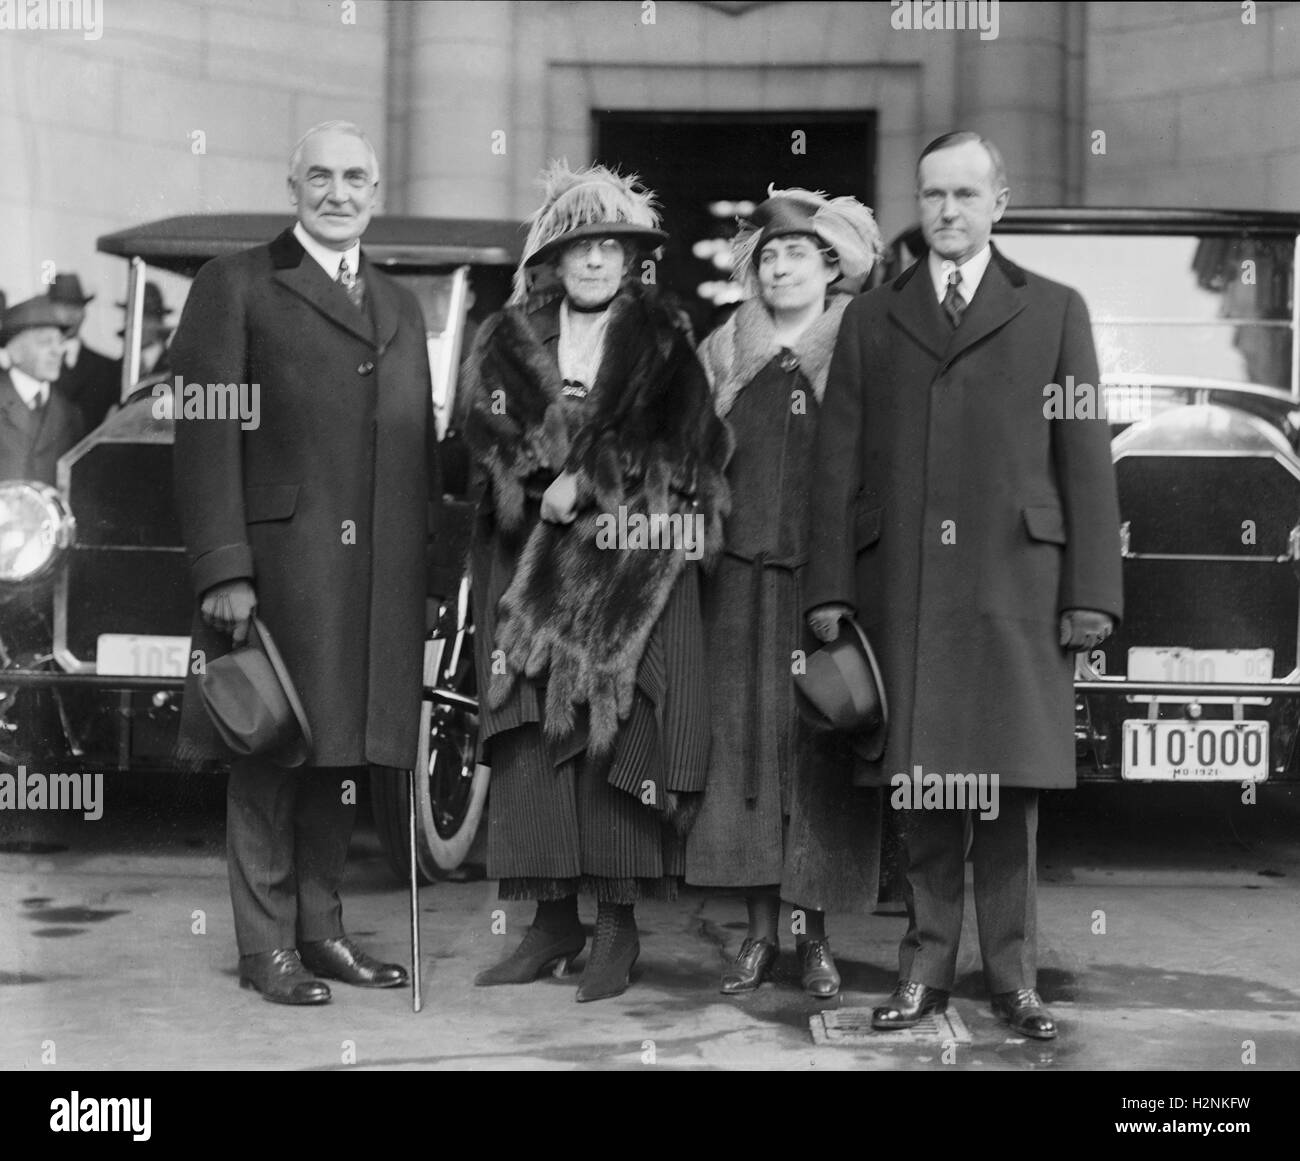 President-Elect Warren G. Harding, wife Florence Harding, Grace Coolidge, Vice President-Elect Calvin Coolidge, Stock Photo